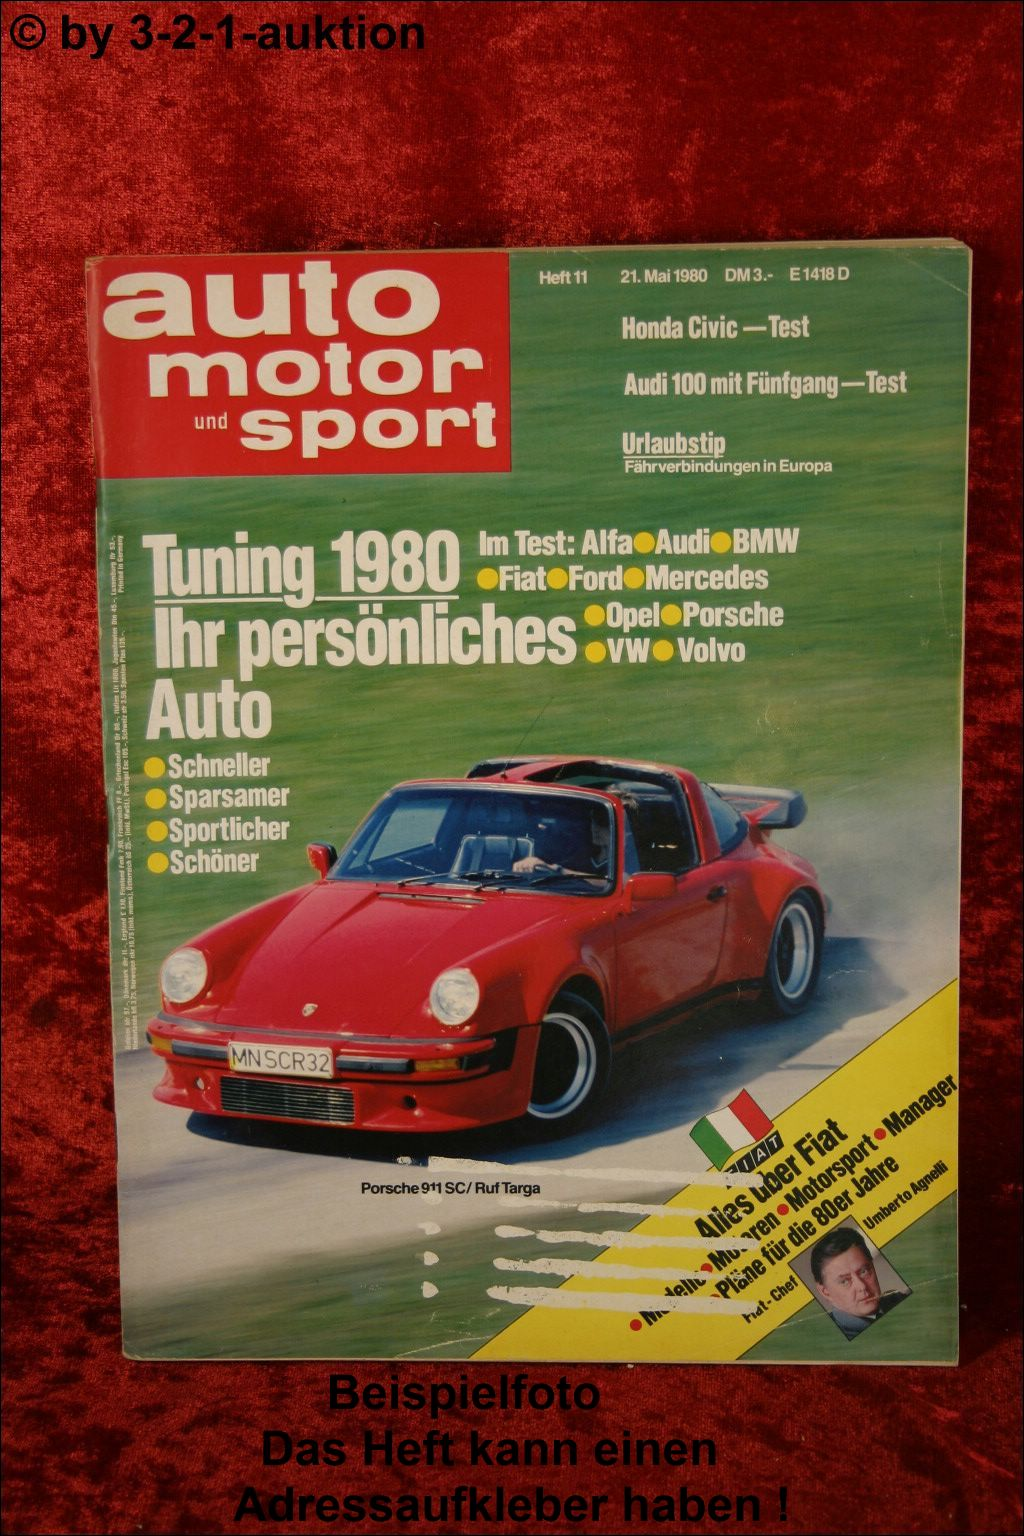 ams auto motor sport 11 80 tuning 1980 audi emsdetten. Black Bedroom Furniture Sets. Home Design Ideas